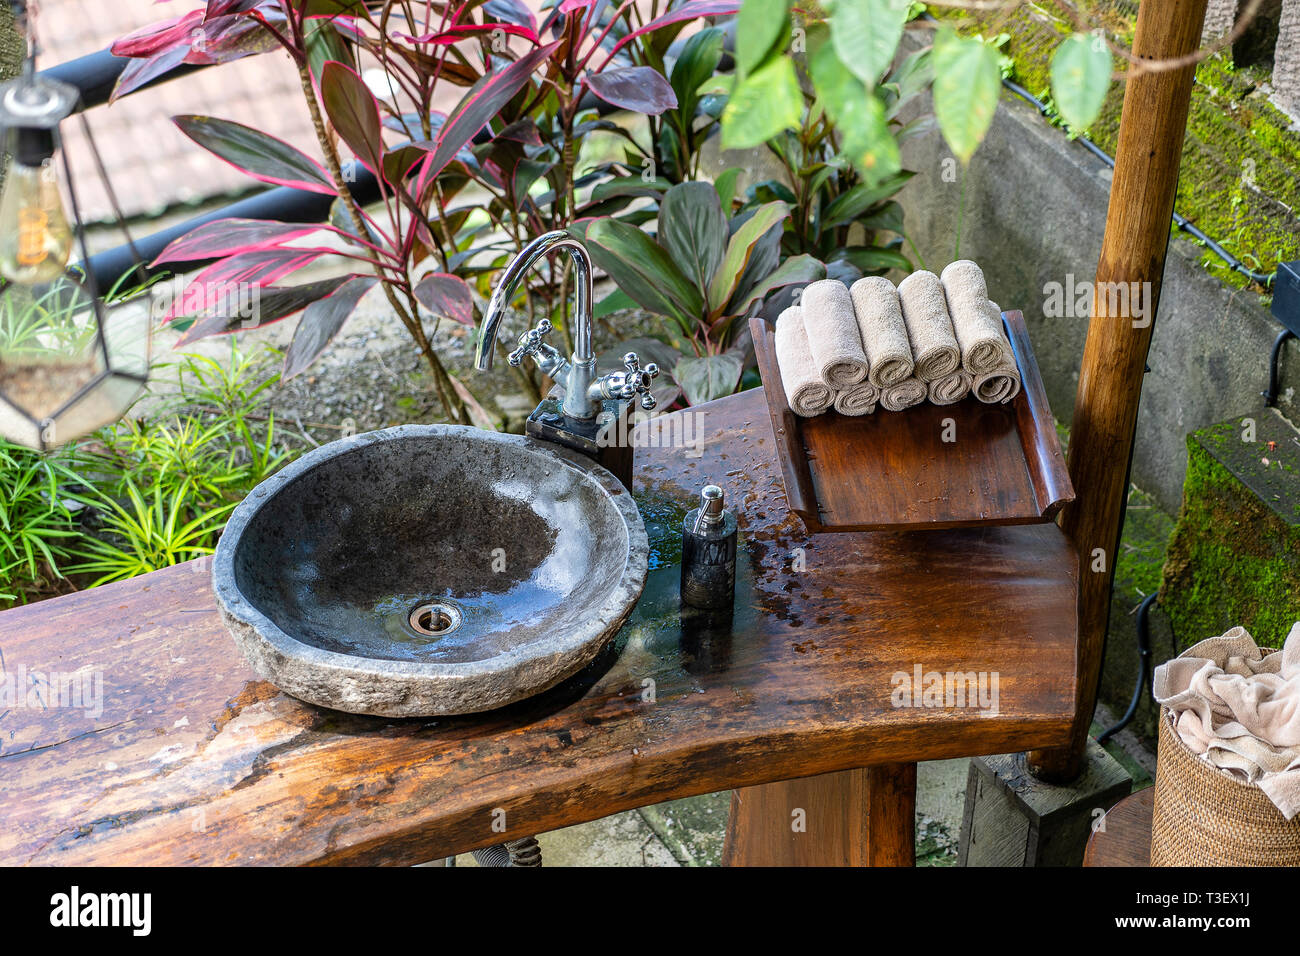 Steinwaschbecken Bali Washbowl Stockfotos Washbowl Bilder Alamy